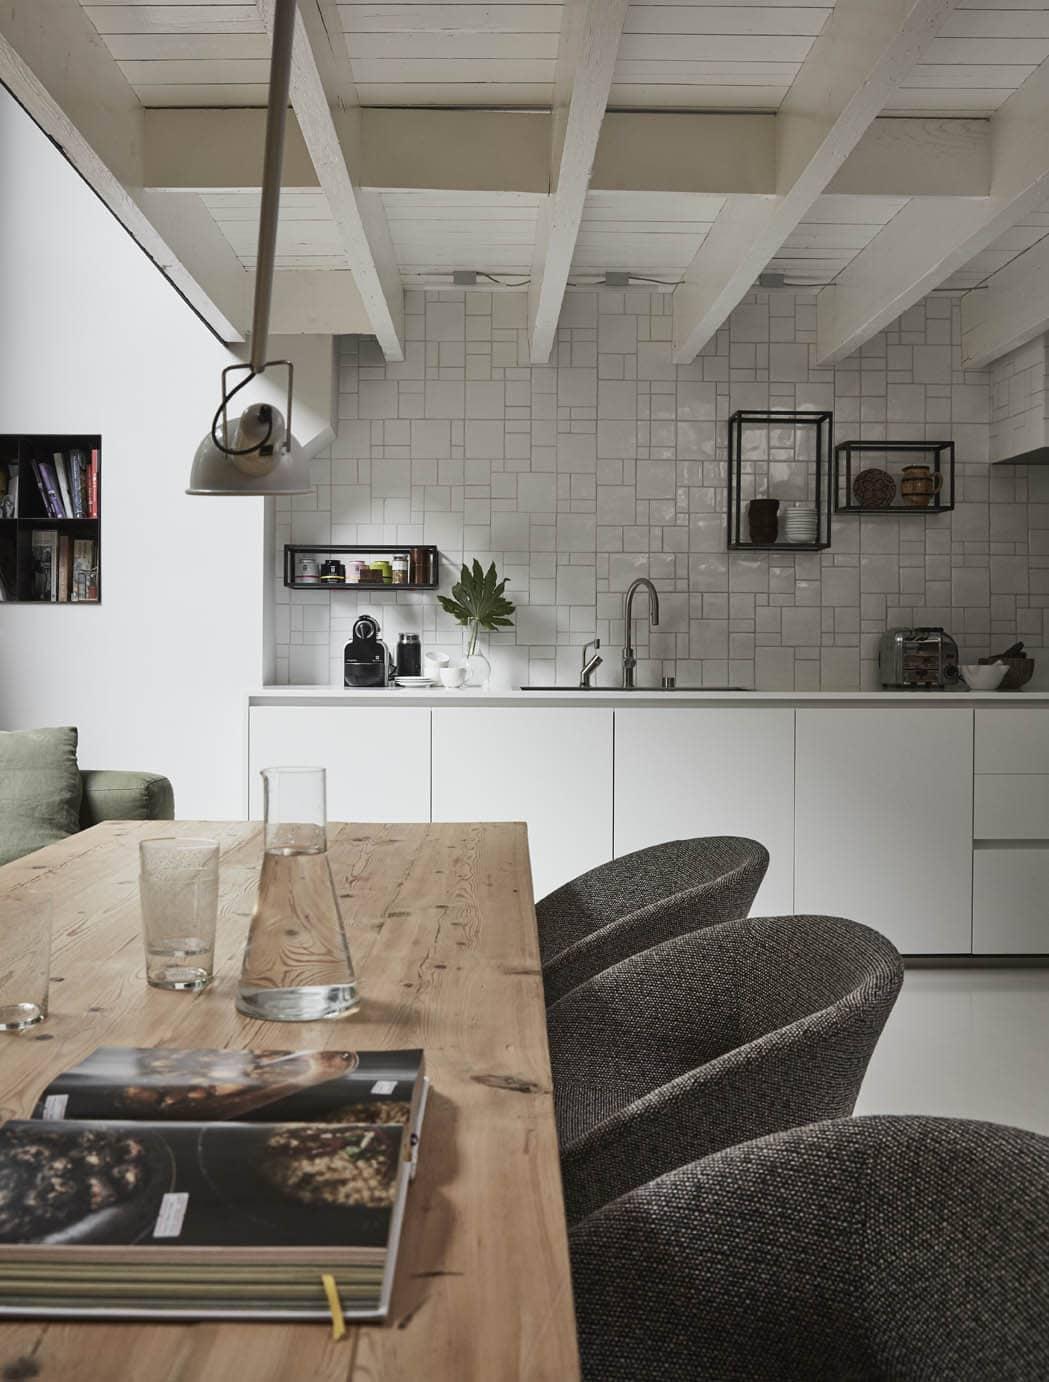 wooden dining table in kitchen